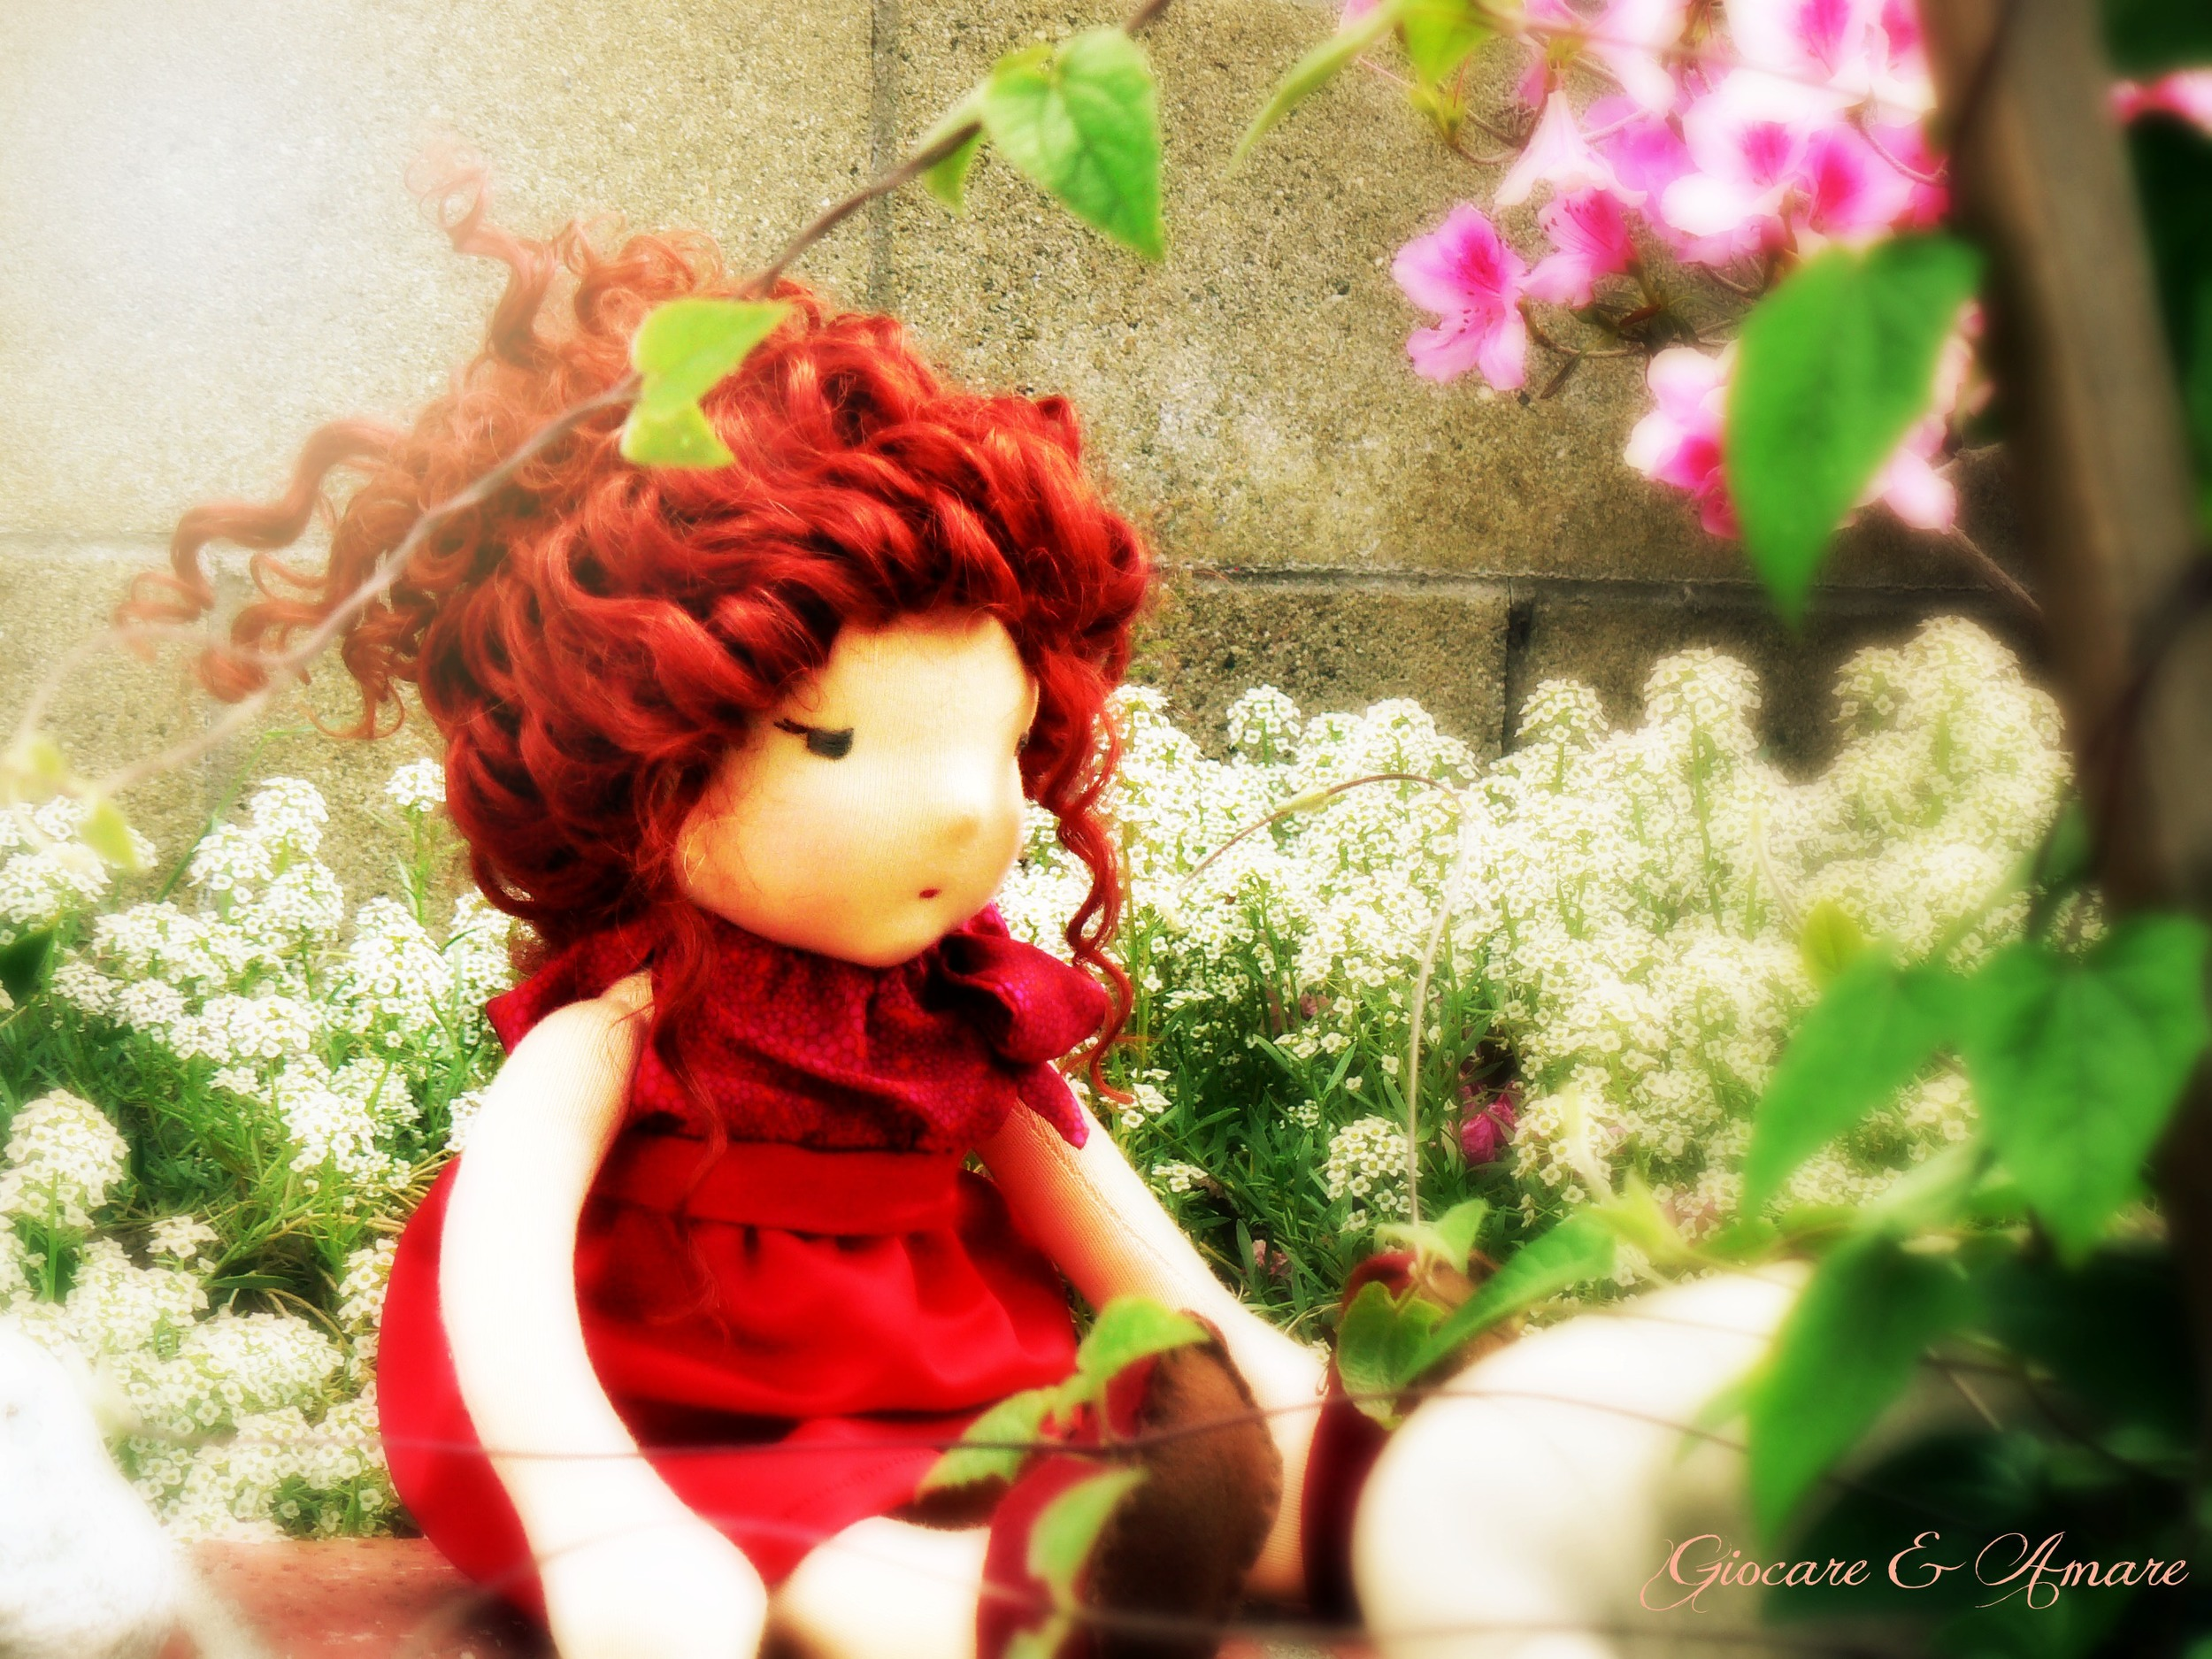 Siobhan in the garden.jpg